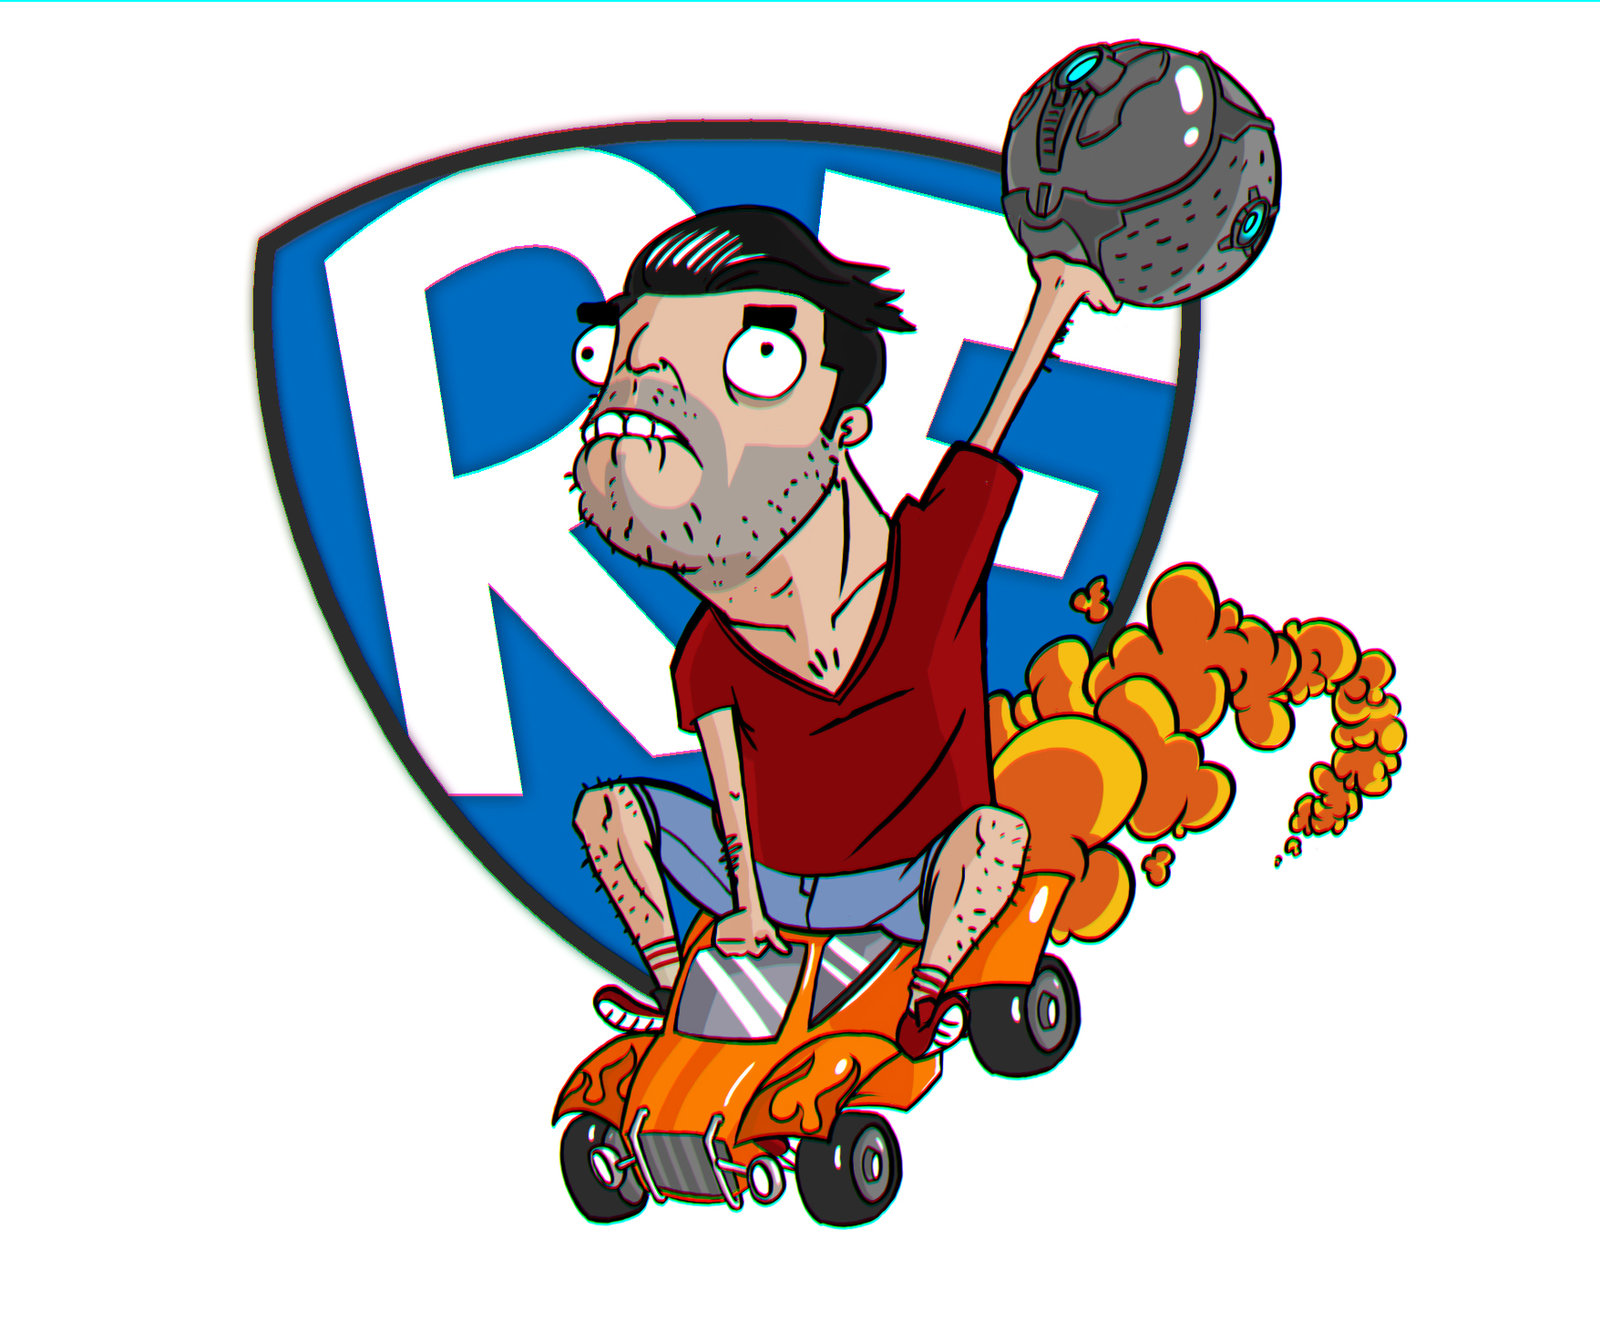 Rocket League Fan Art Self Portrait.